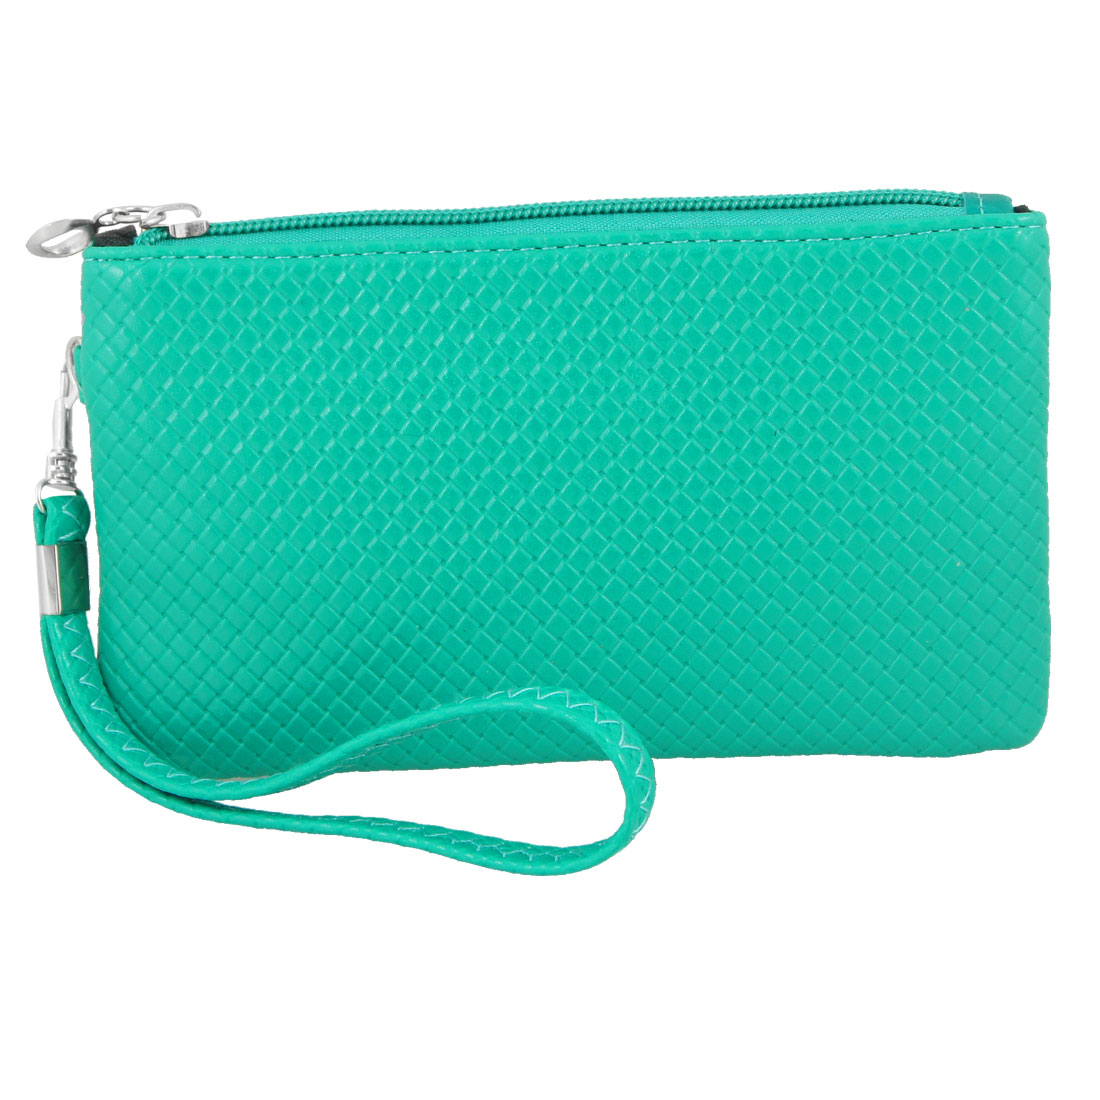 Nylon Lining Faux Leather Weave Pattern Wallet Purse Green for Women